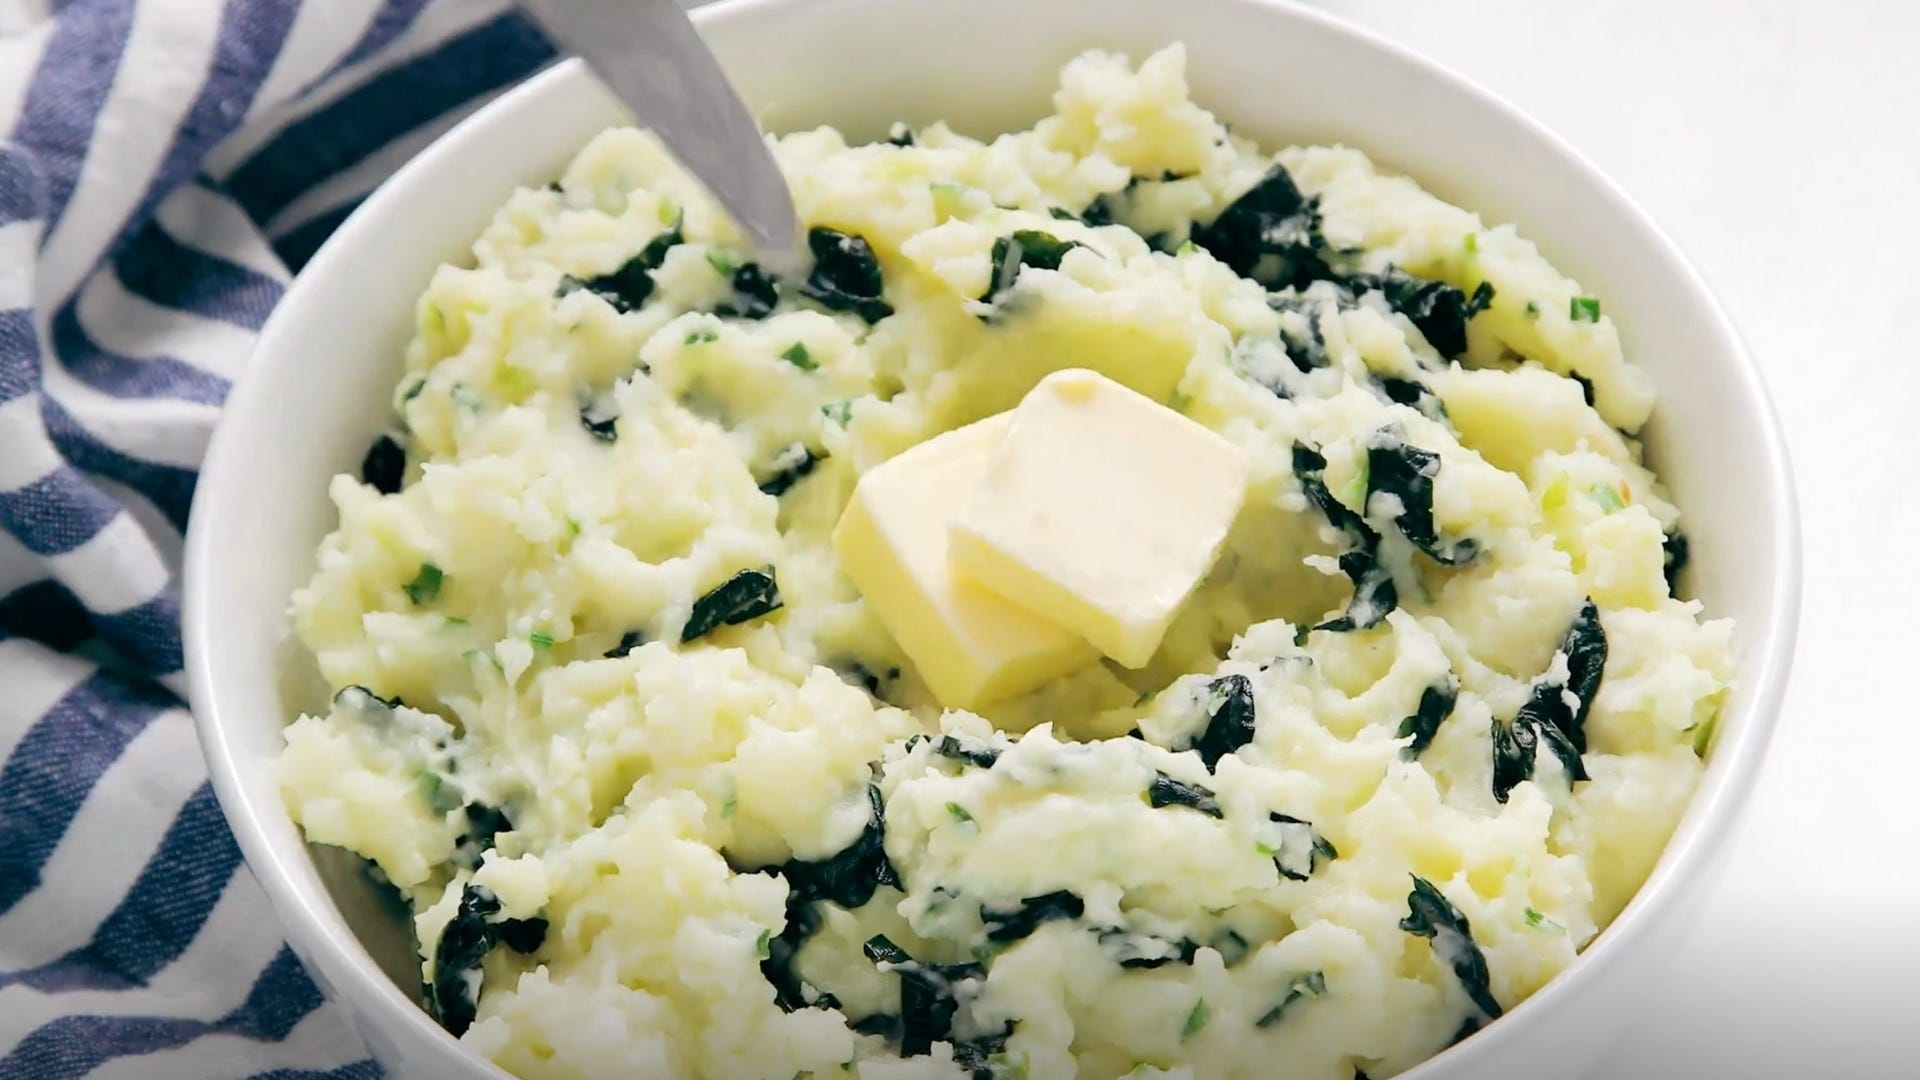 Bowl of mashed potatoes mixed with greens.